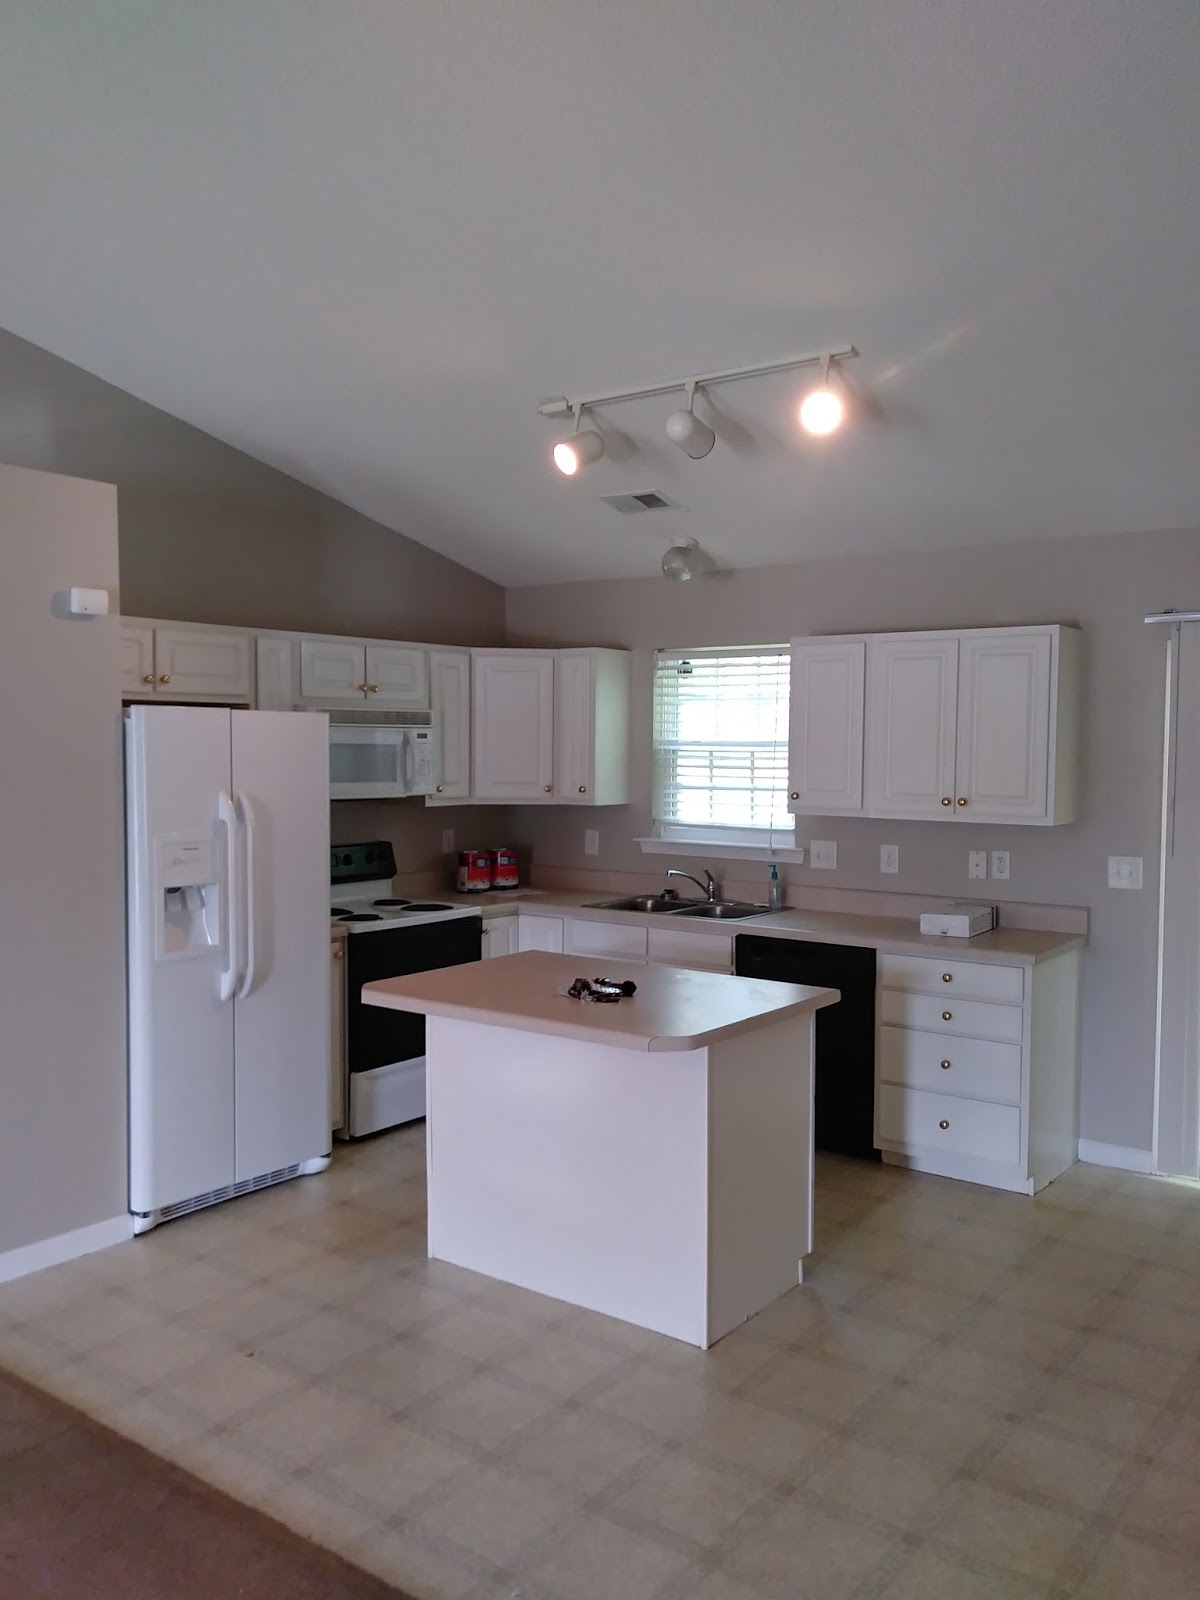 painters in spartanburg sc and greenville sc interior painting we did at hamilton chase in